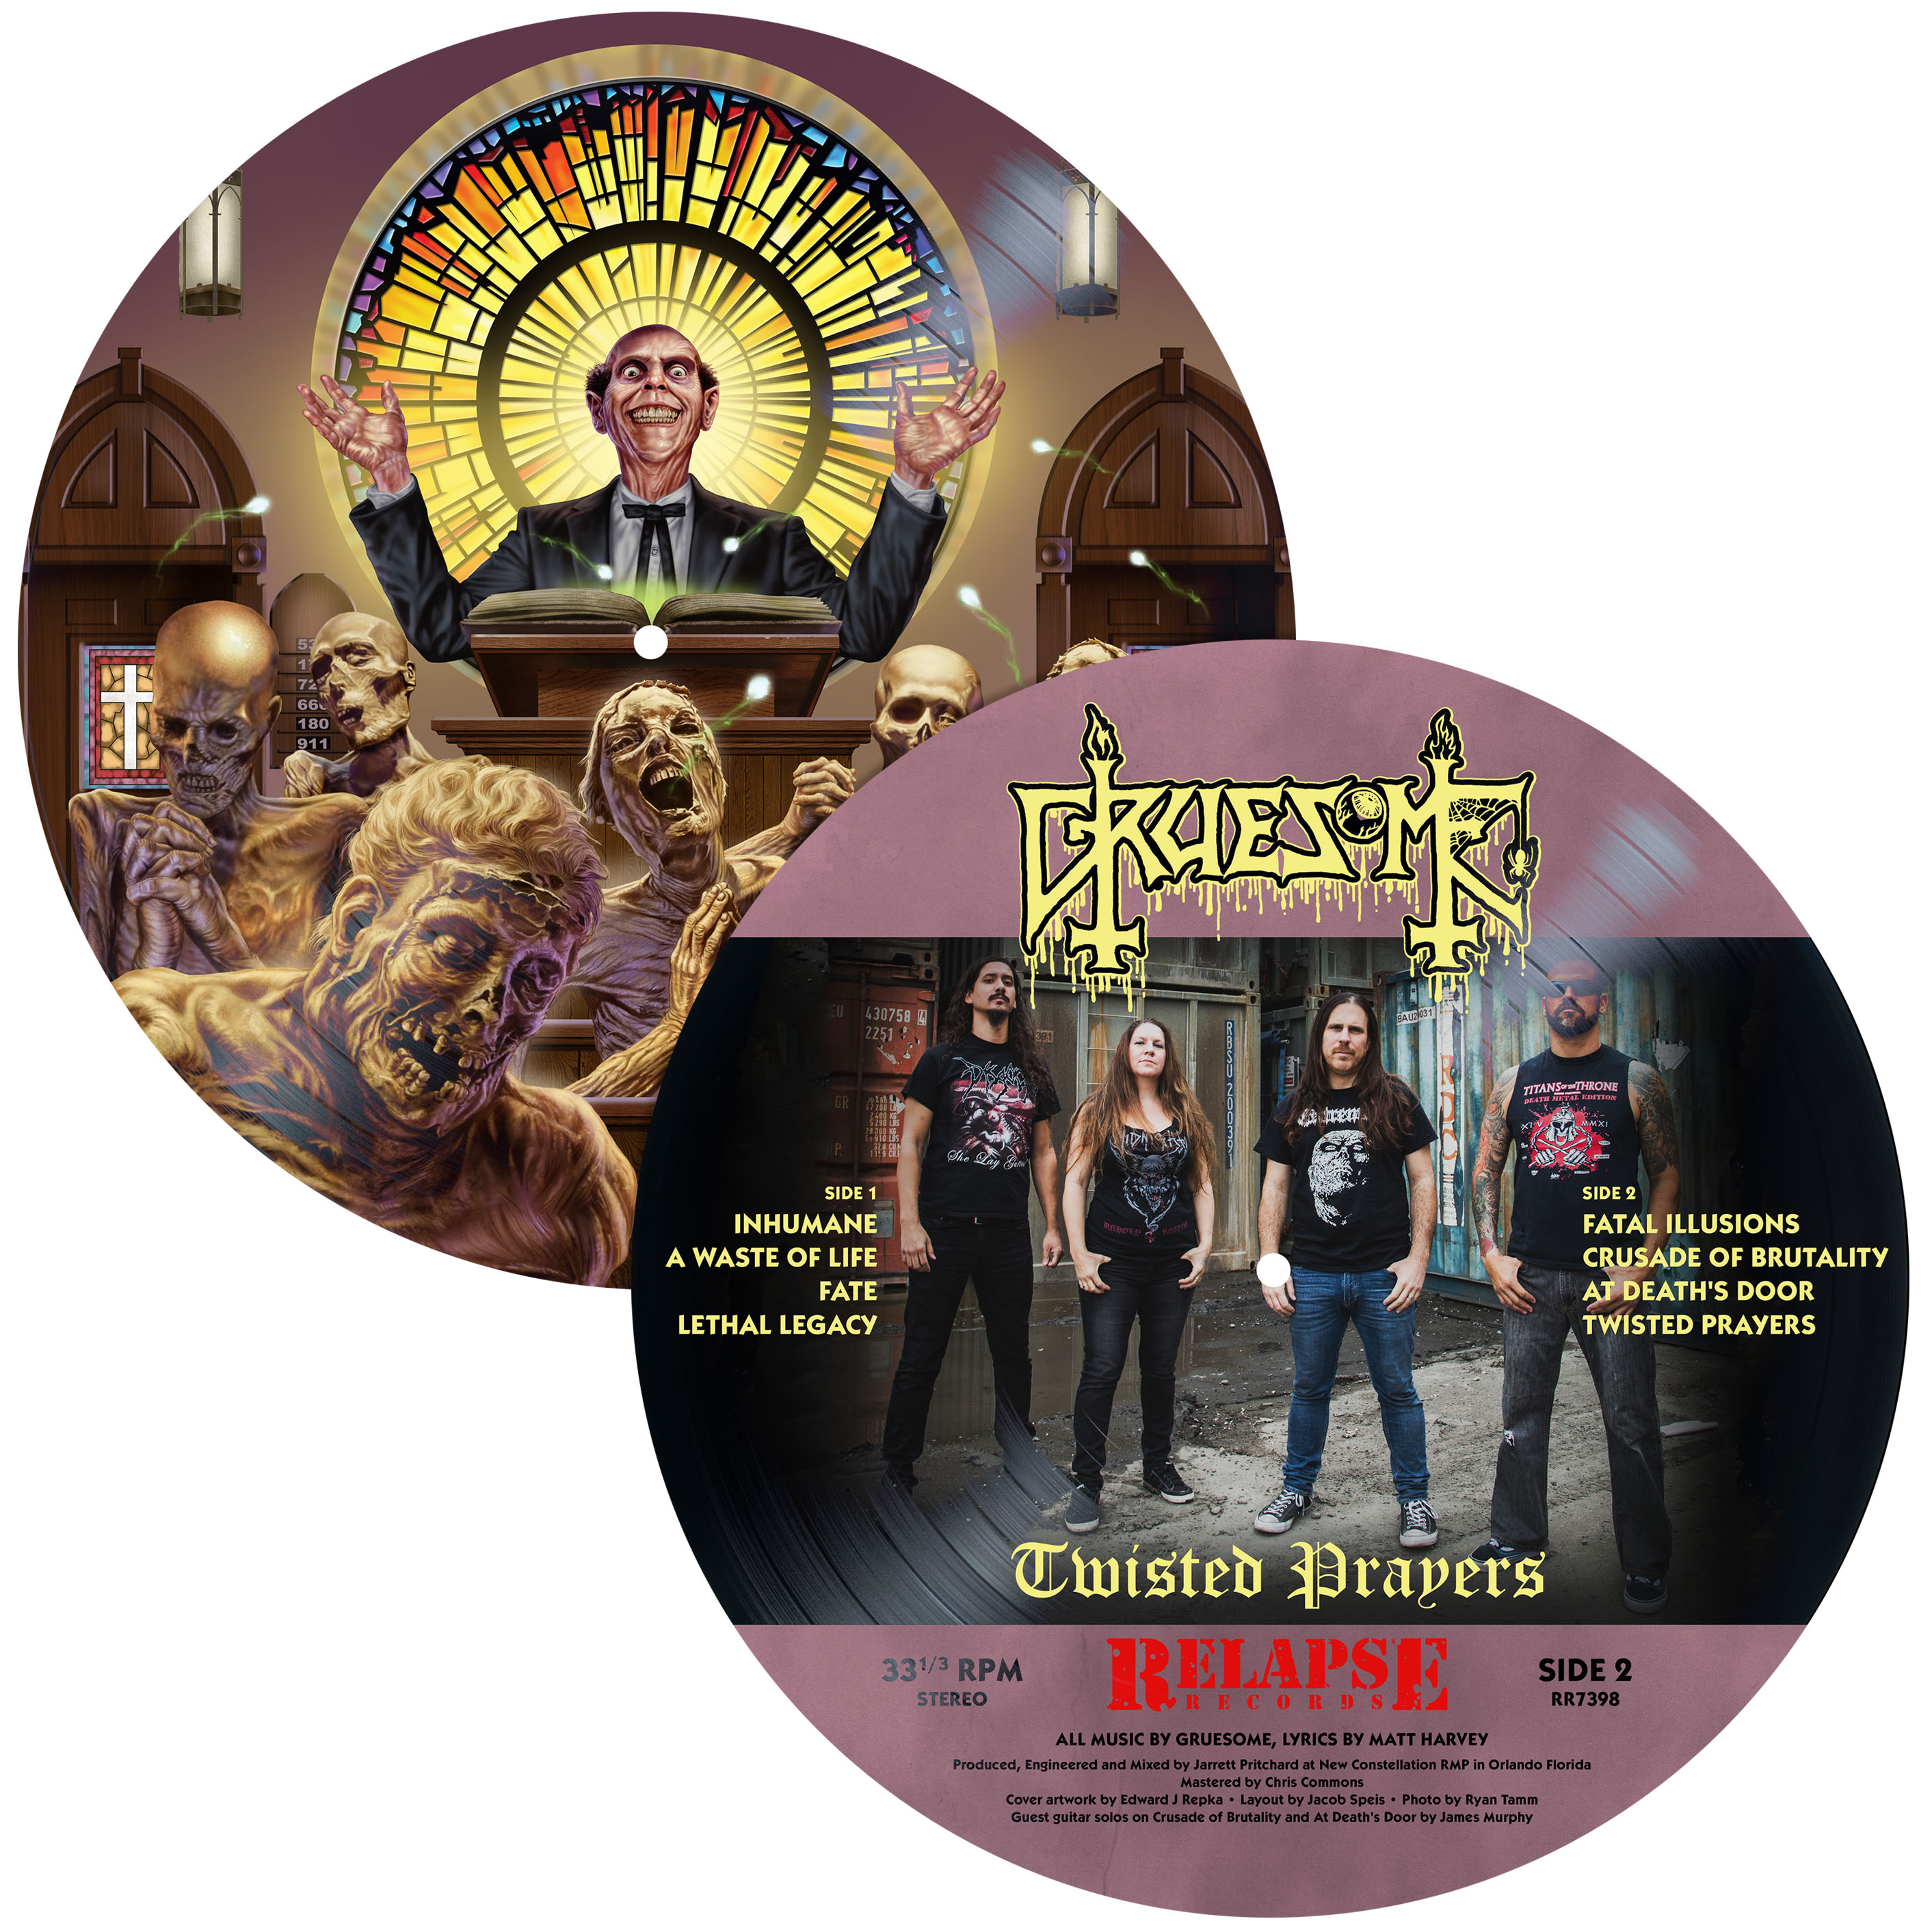 Twisted Prayers LP + Picture Flexi Disc Deluxe Package